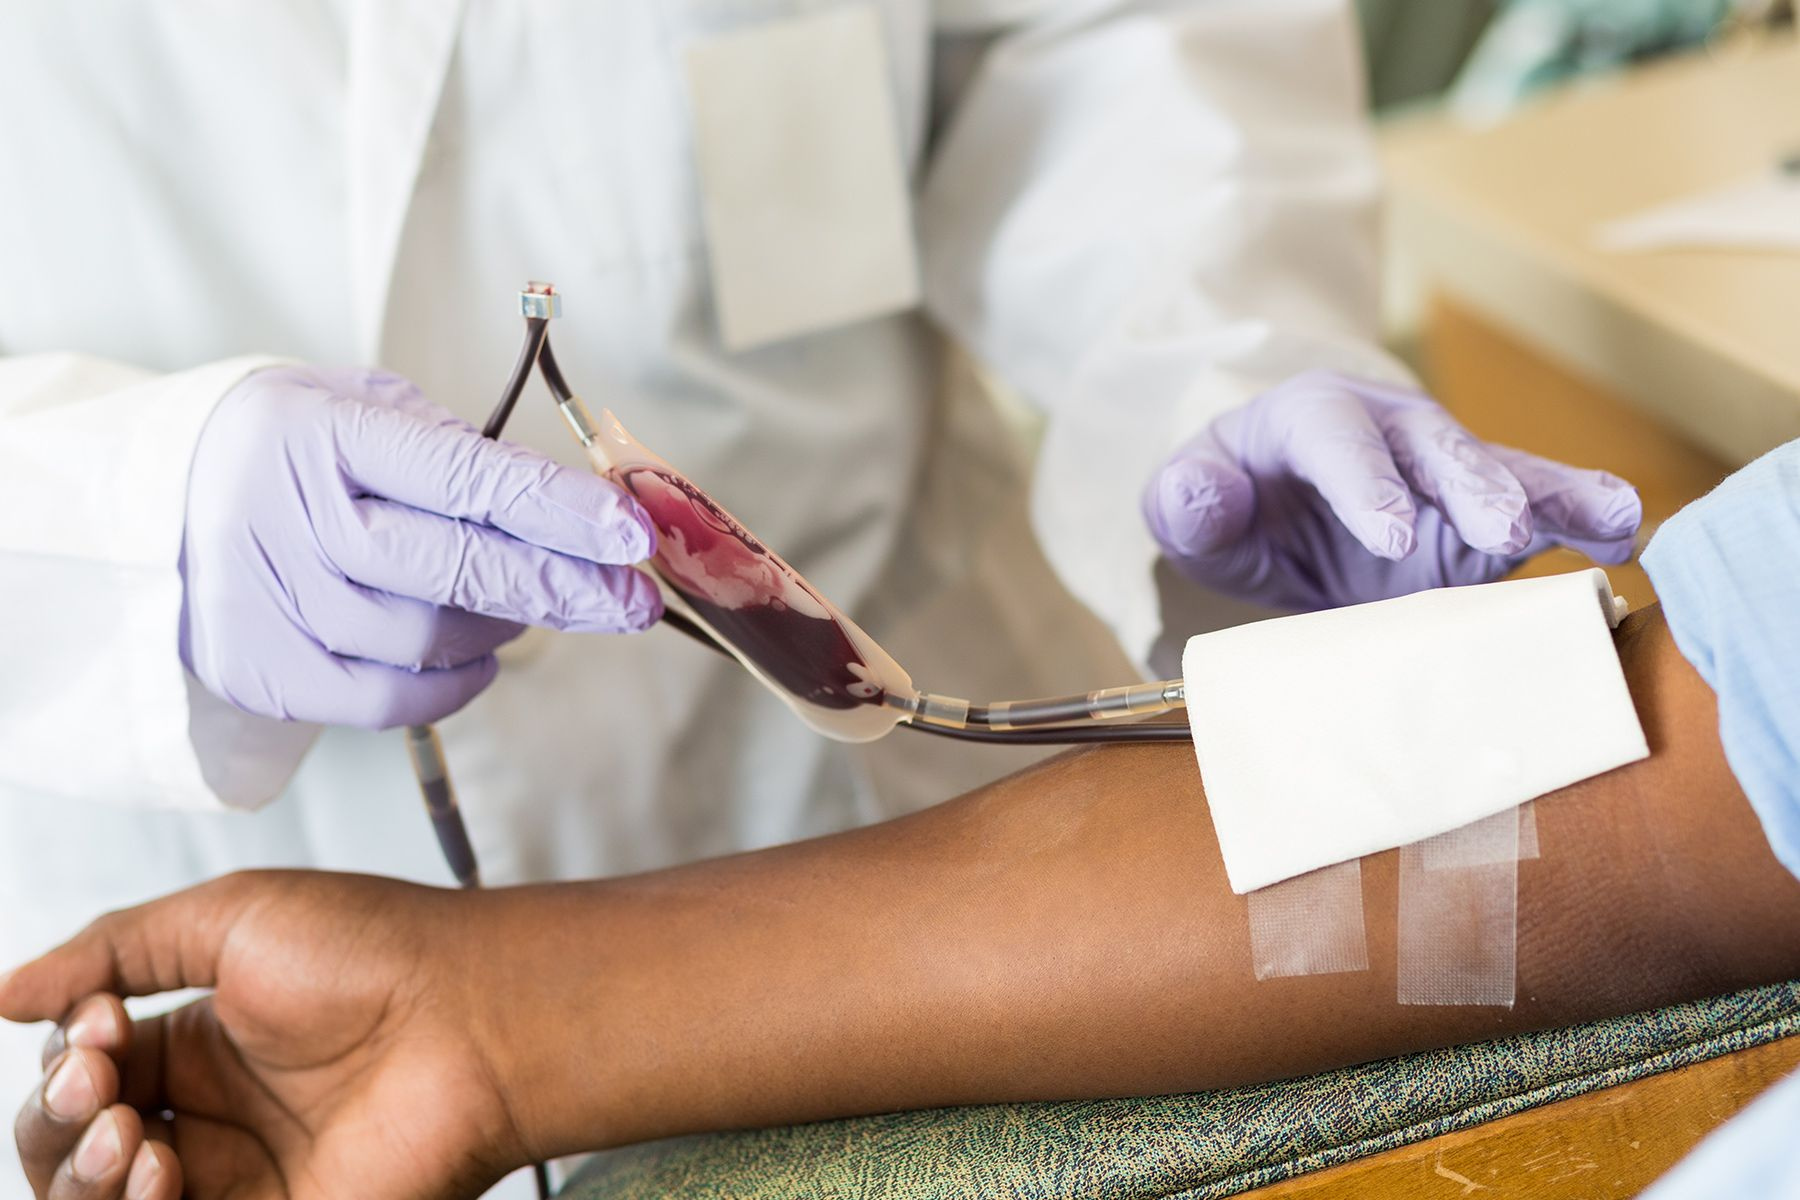 Blood Test Might Spot Most Dangerous COVID Cases  - web md